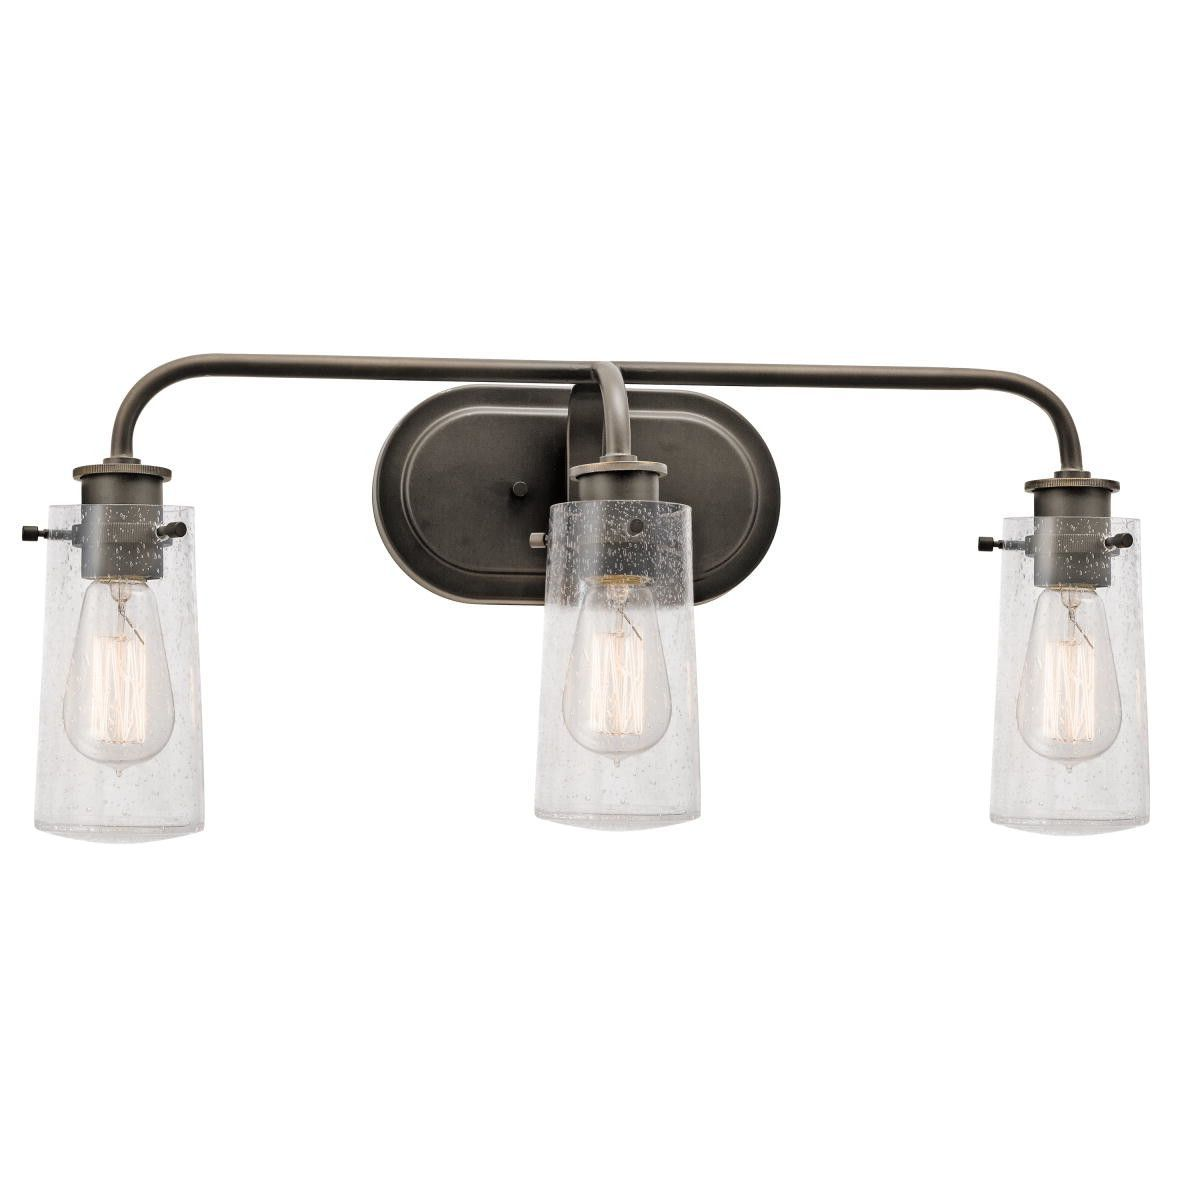 Bathroom Vanity Lights Kichler victoria 6-light bath bar | products, 1 year and features of